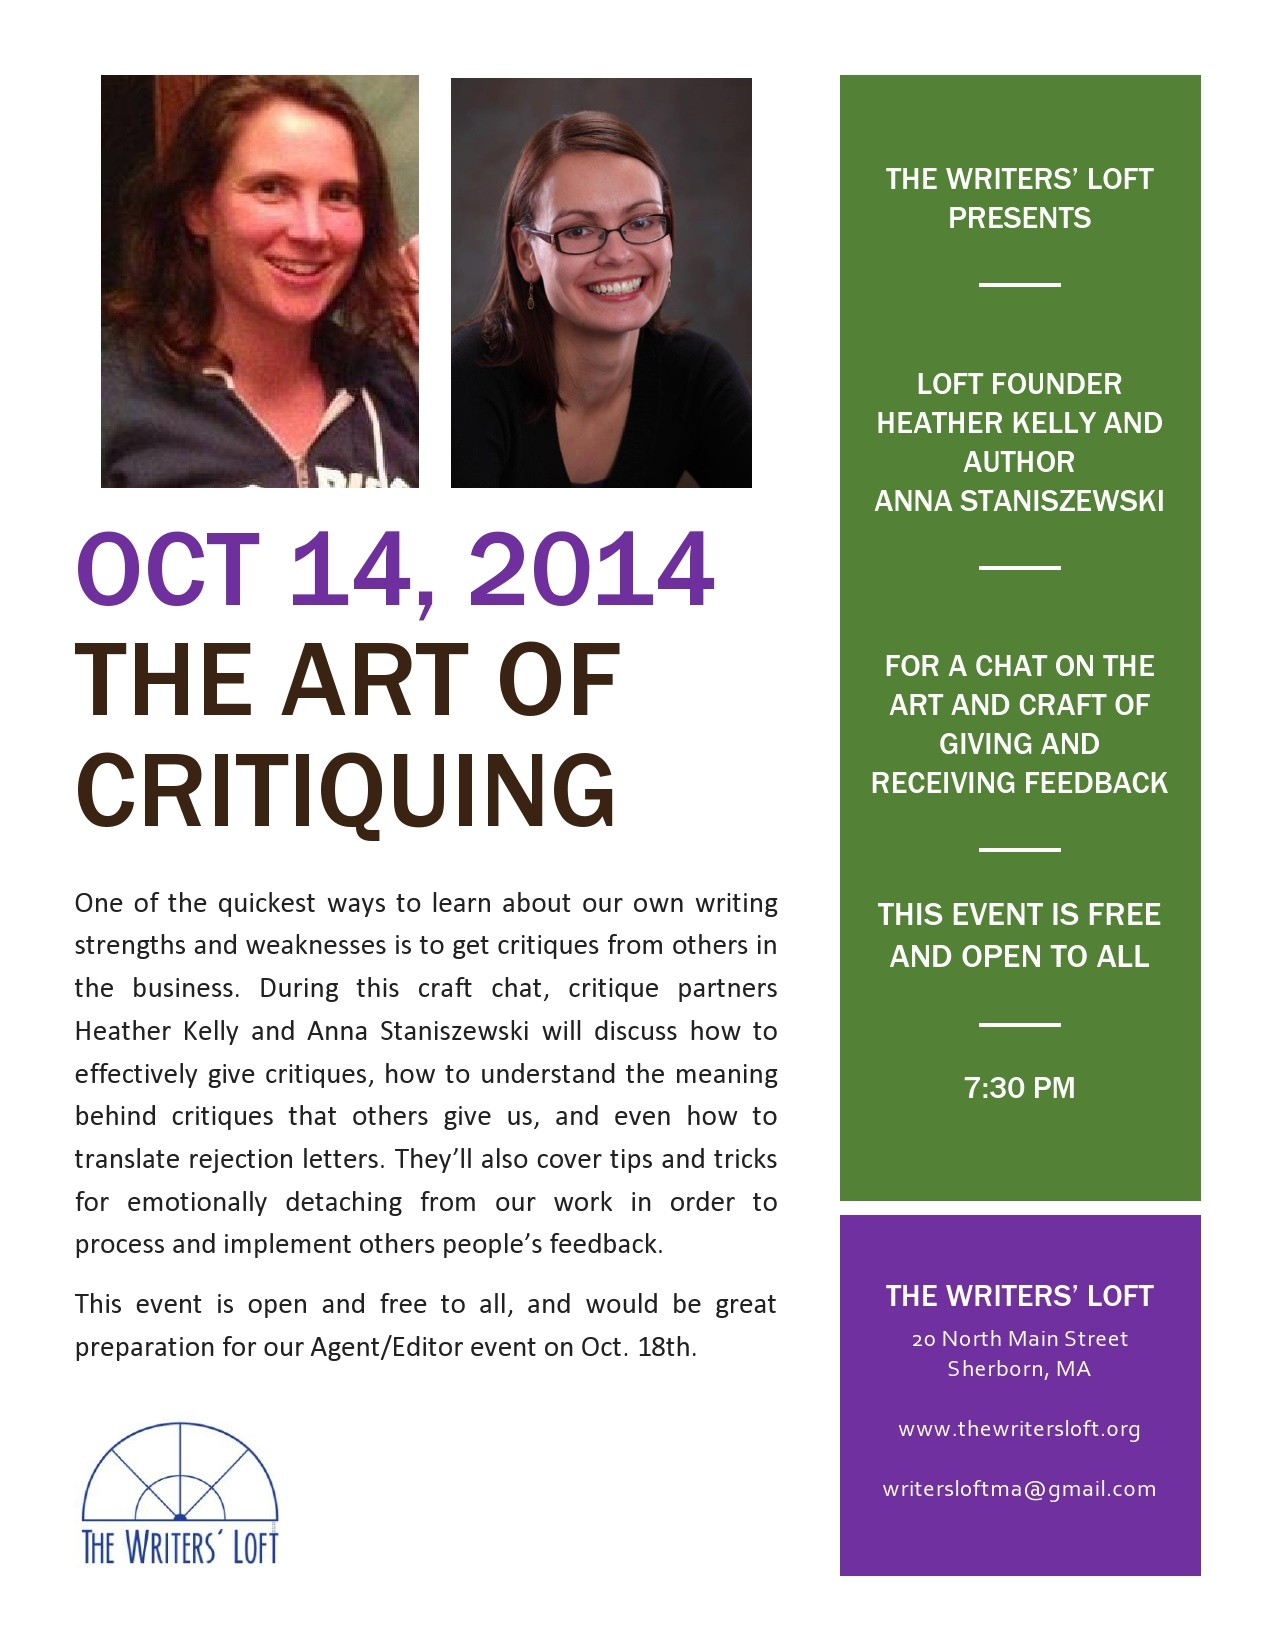 2014-10-14 Art of Critiquing